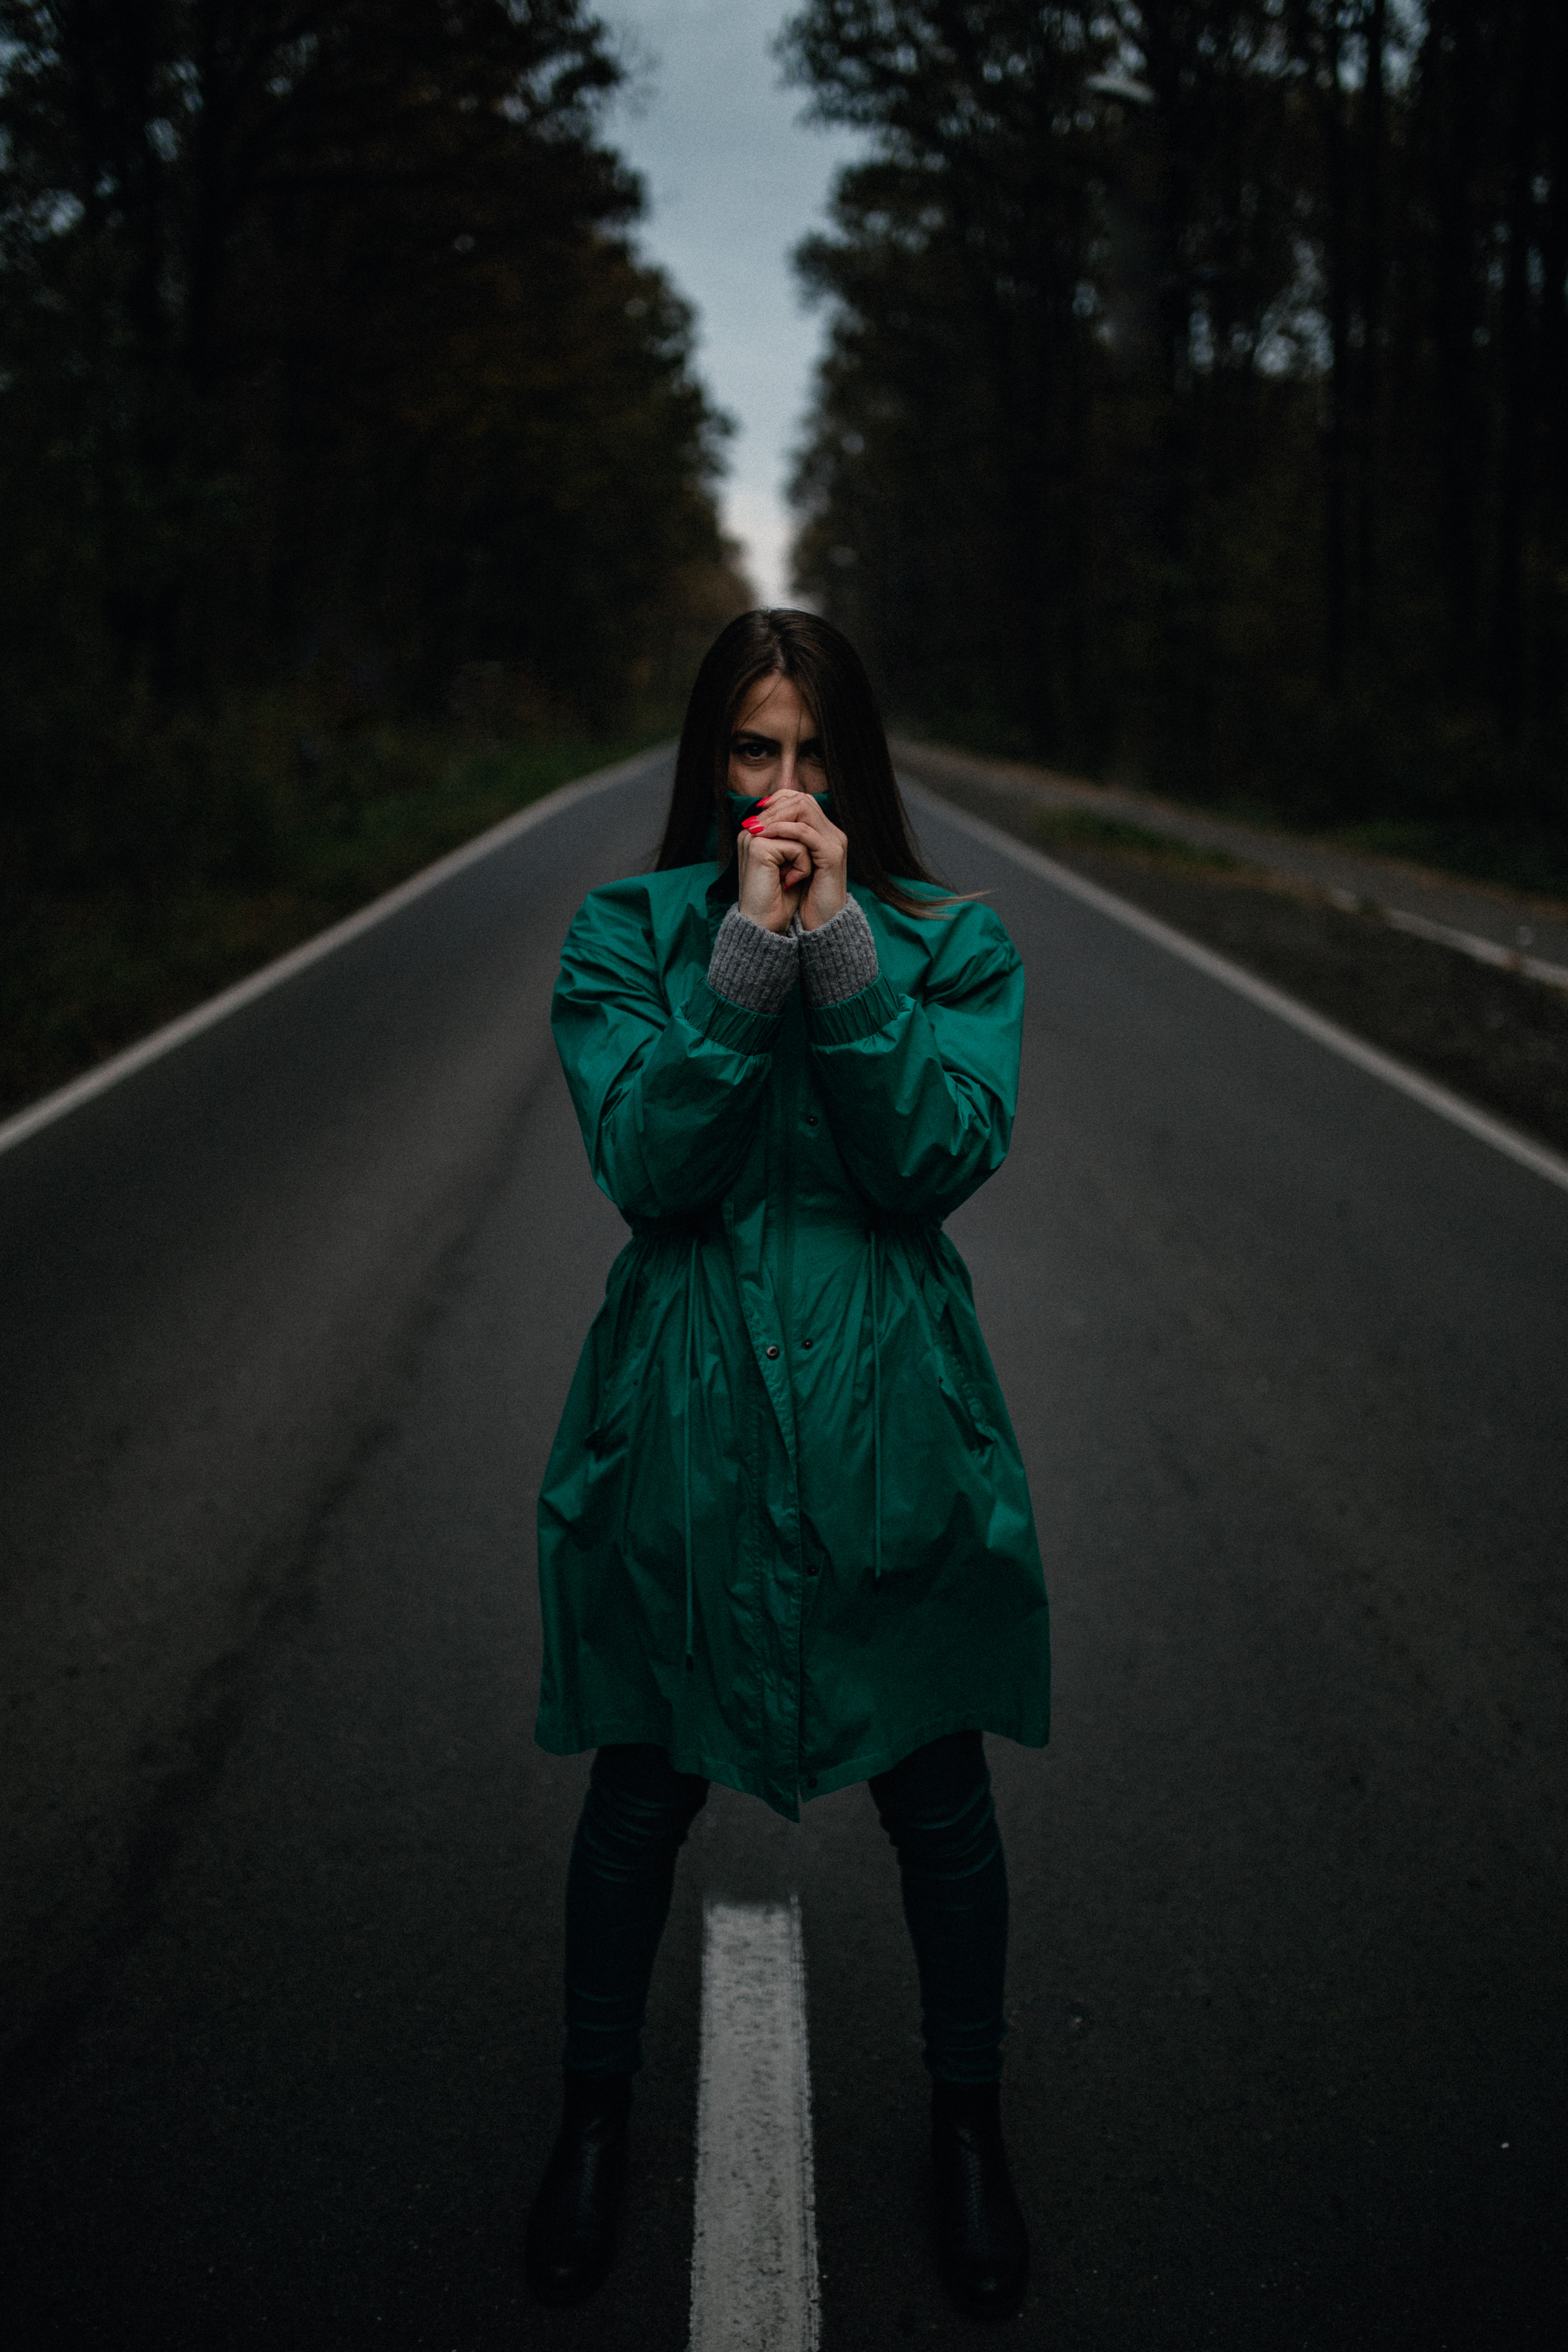 woman-in-green-coat-standing-on-road-during-daytime